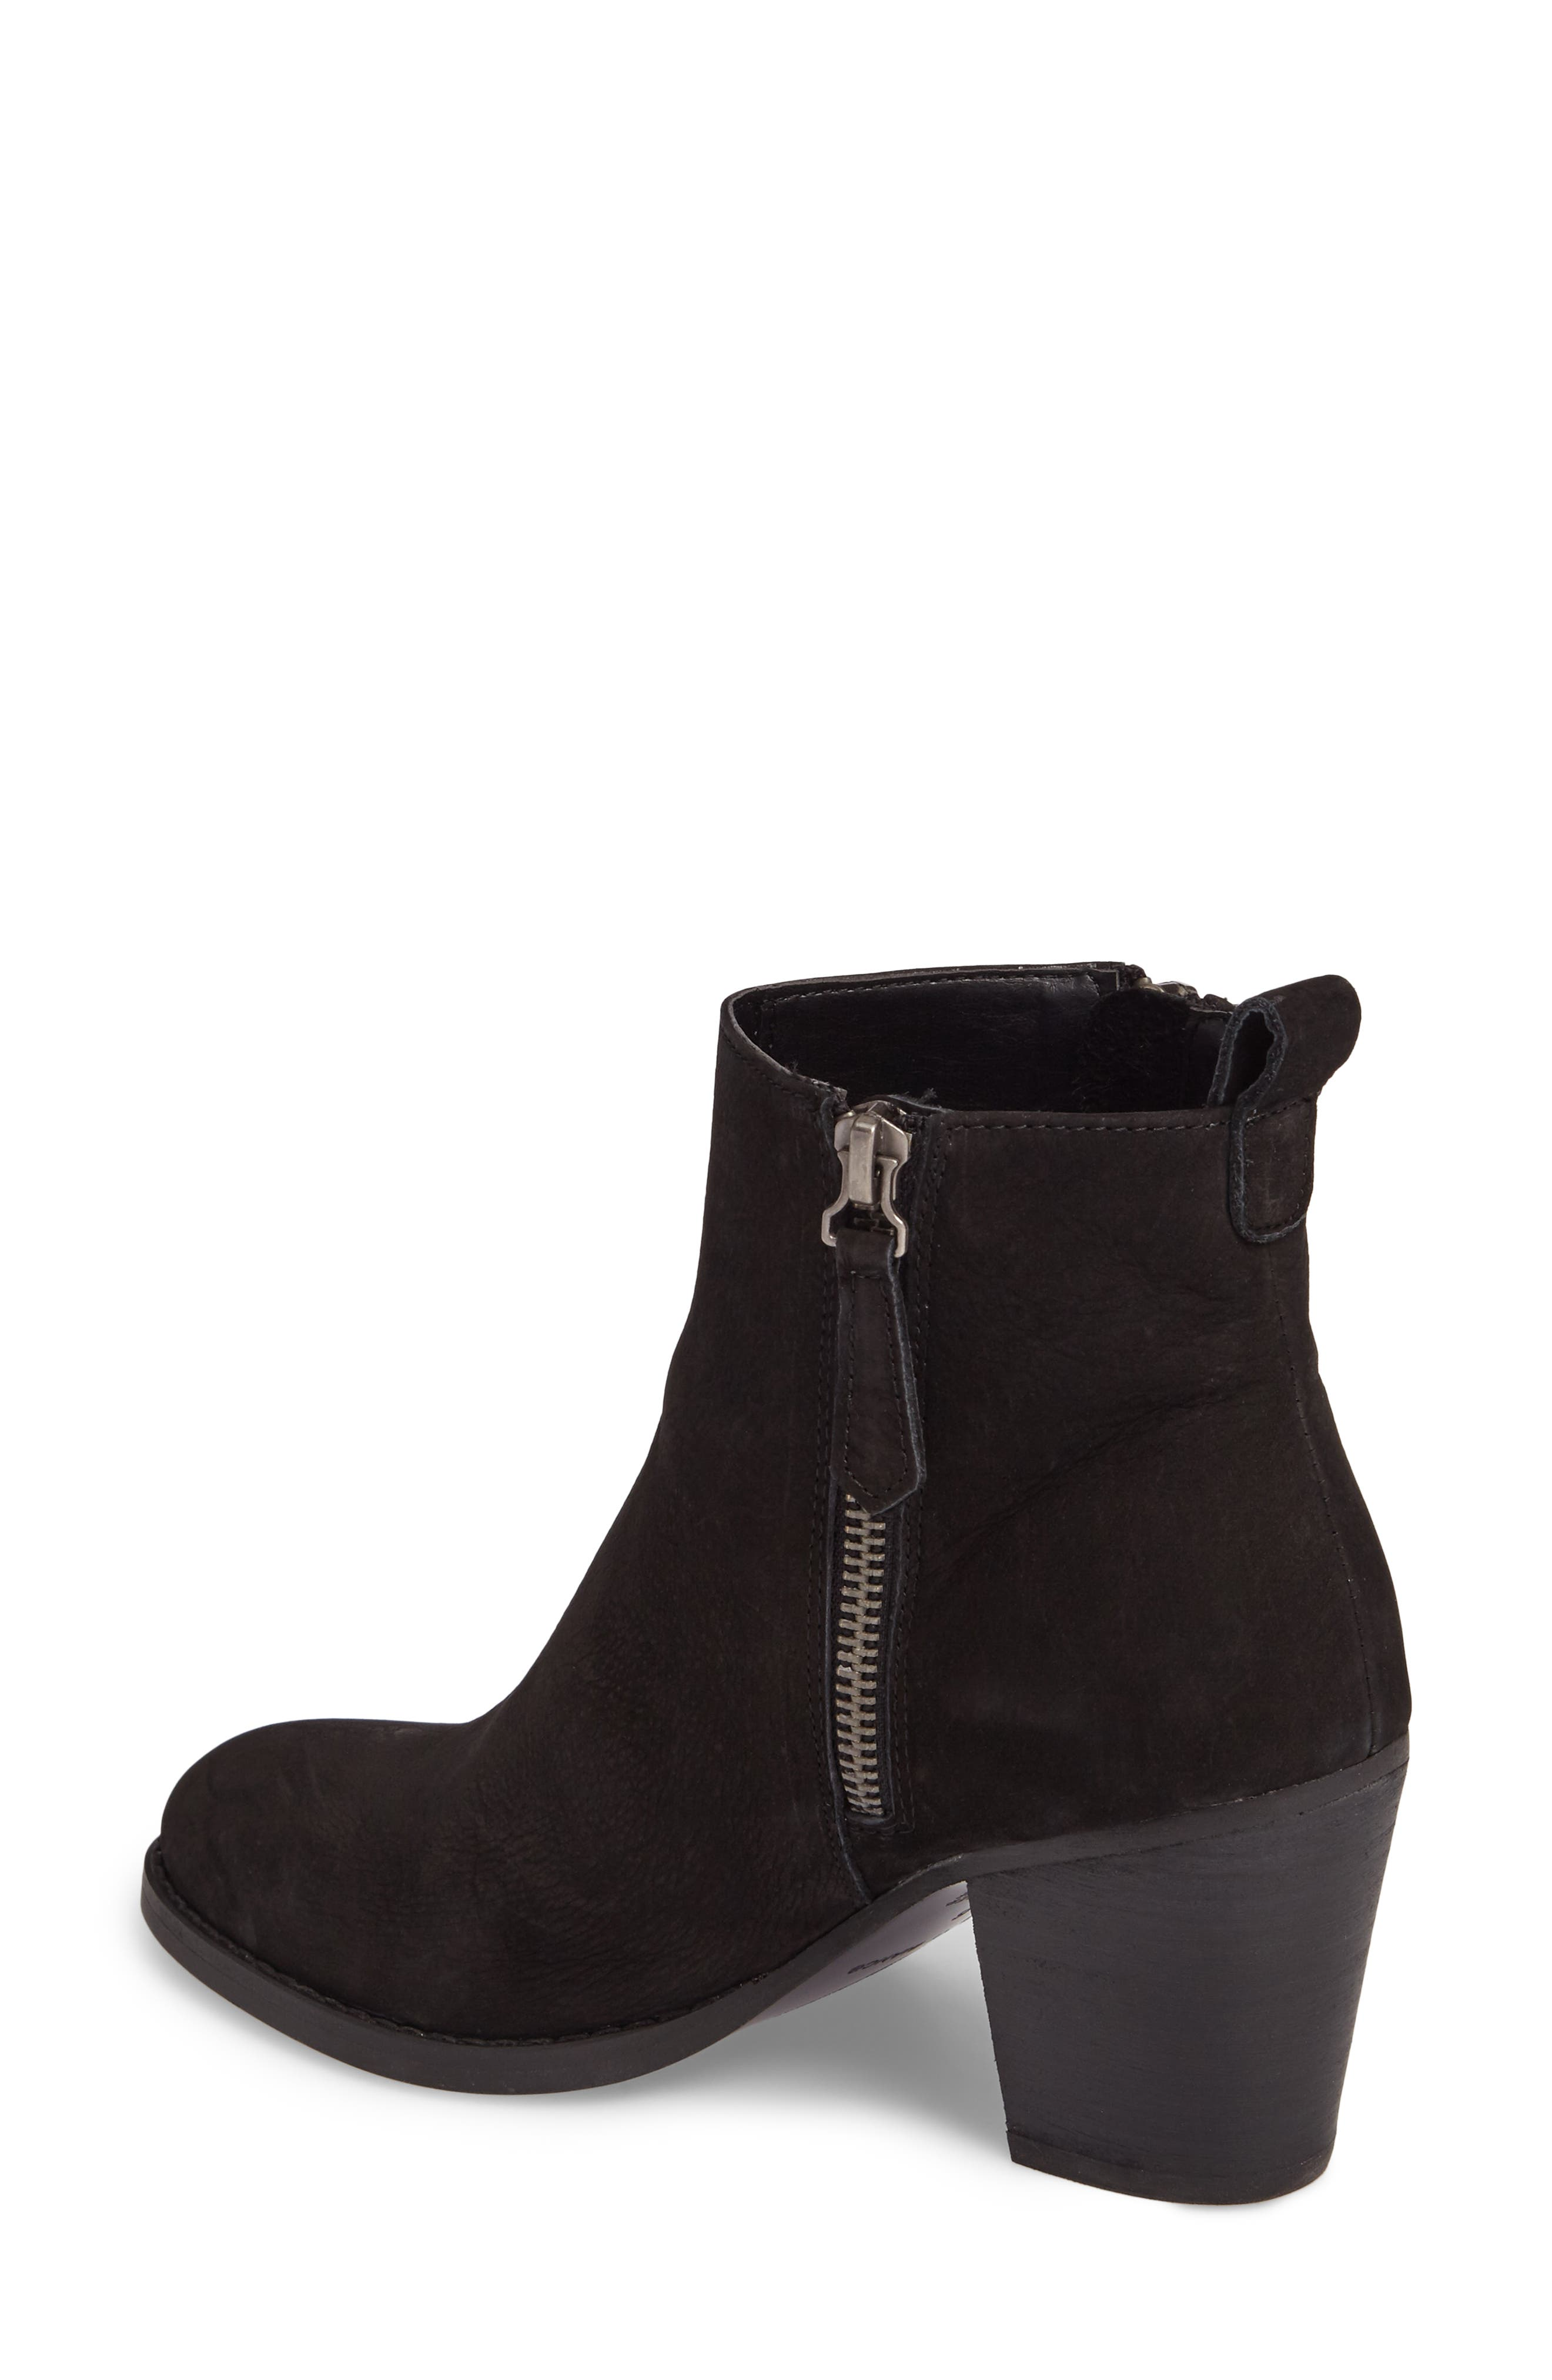 Lance Stacked Heel Bootie,                             Alternate thumbnail 2, color,                             001